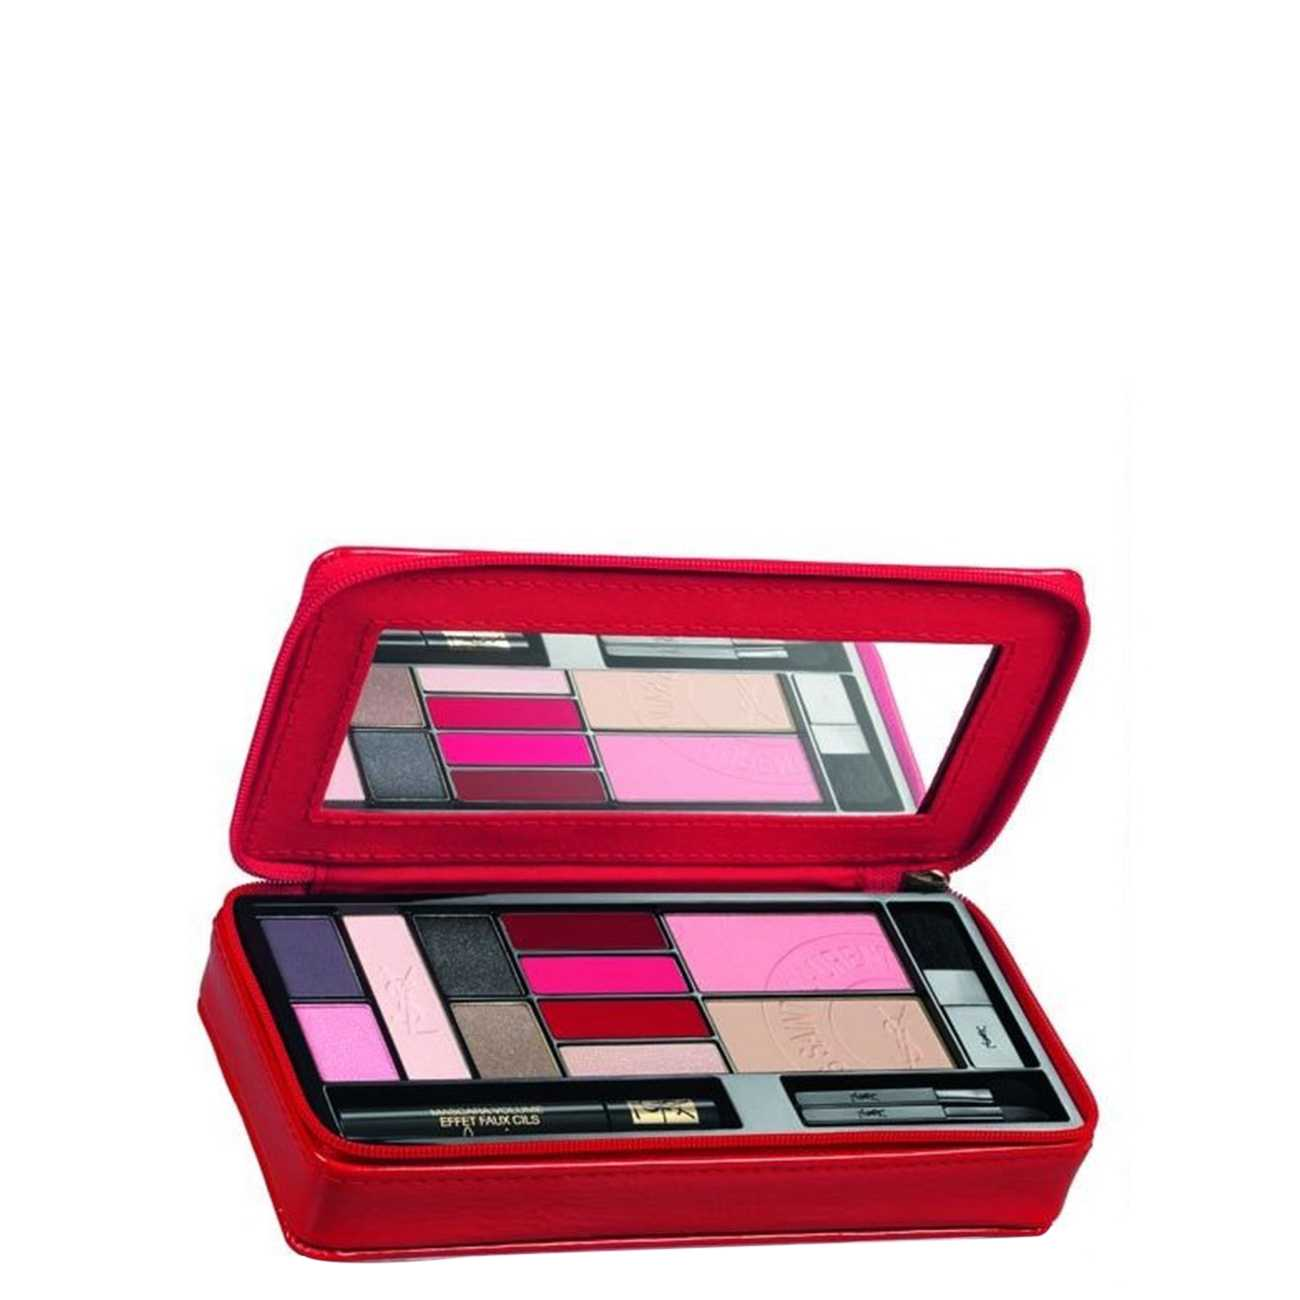 EXTREMELY MAKE-UP PALETTE 30 G